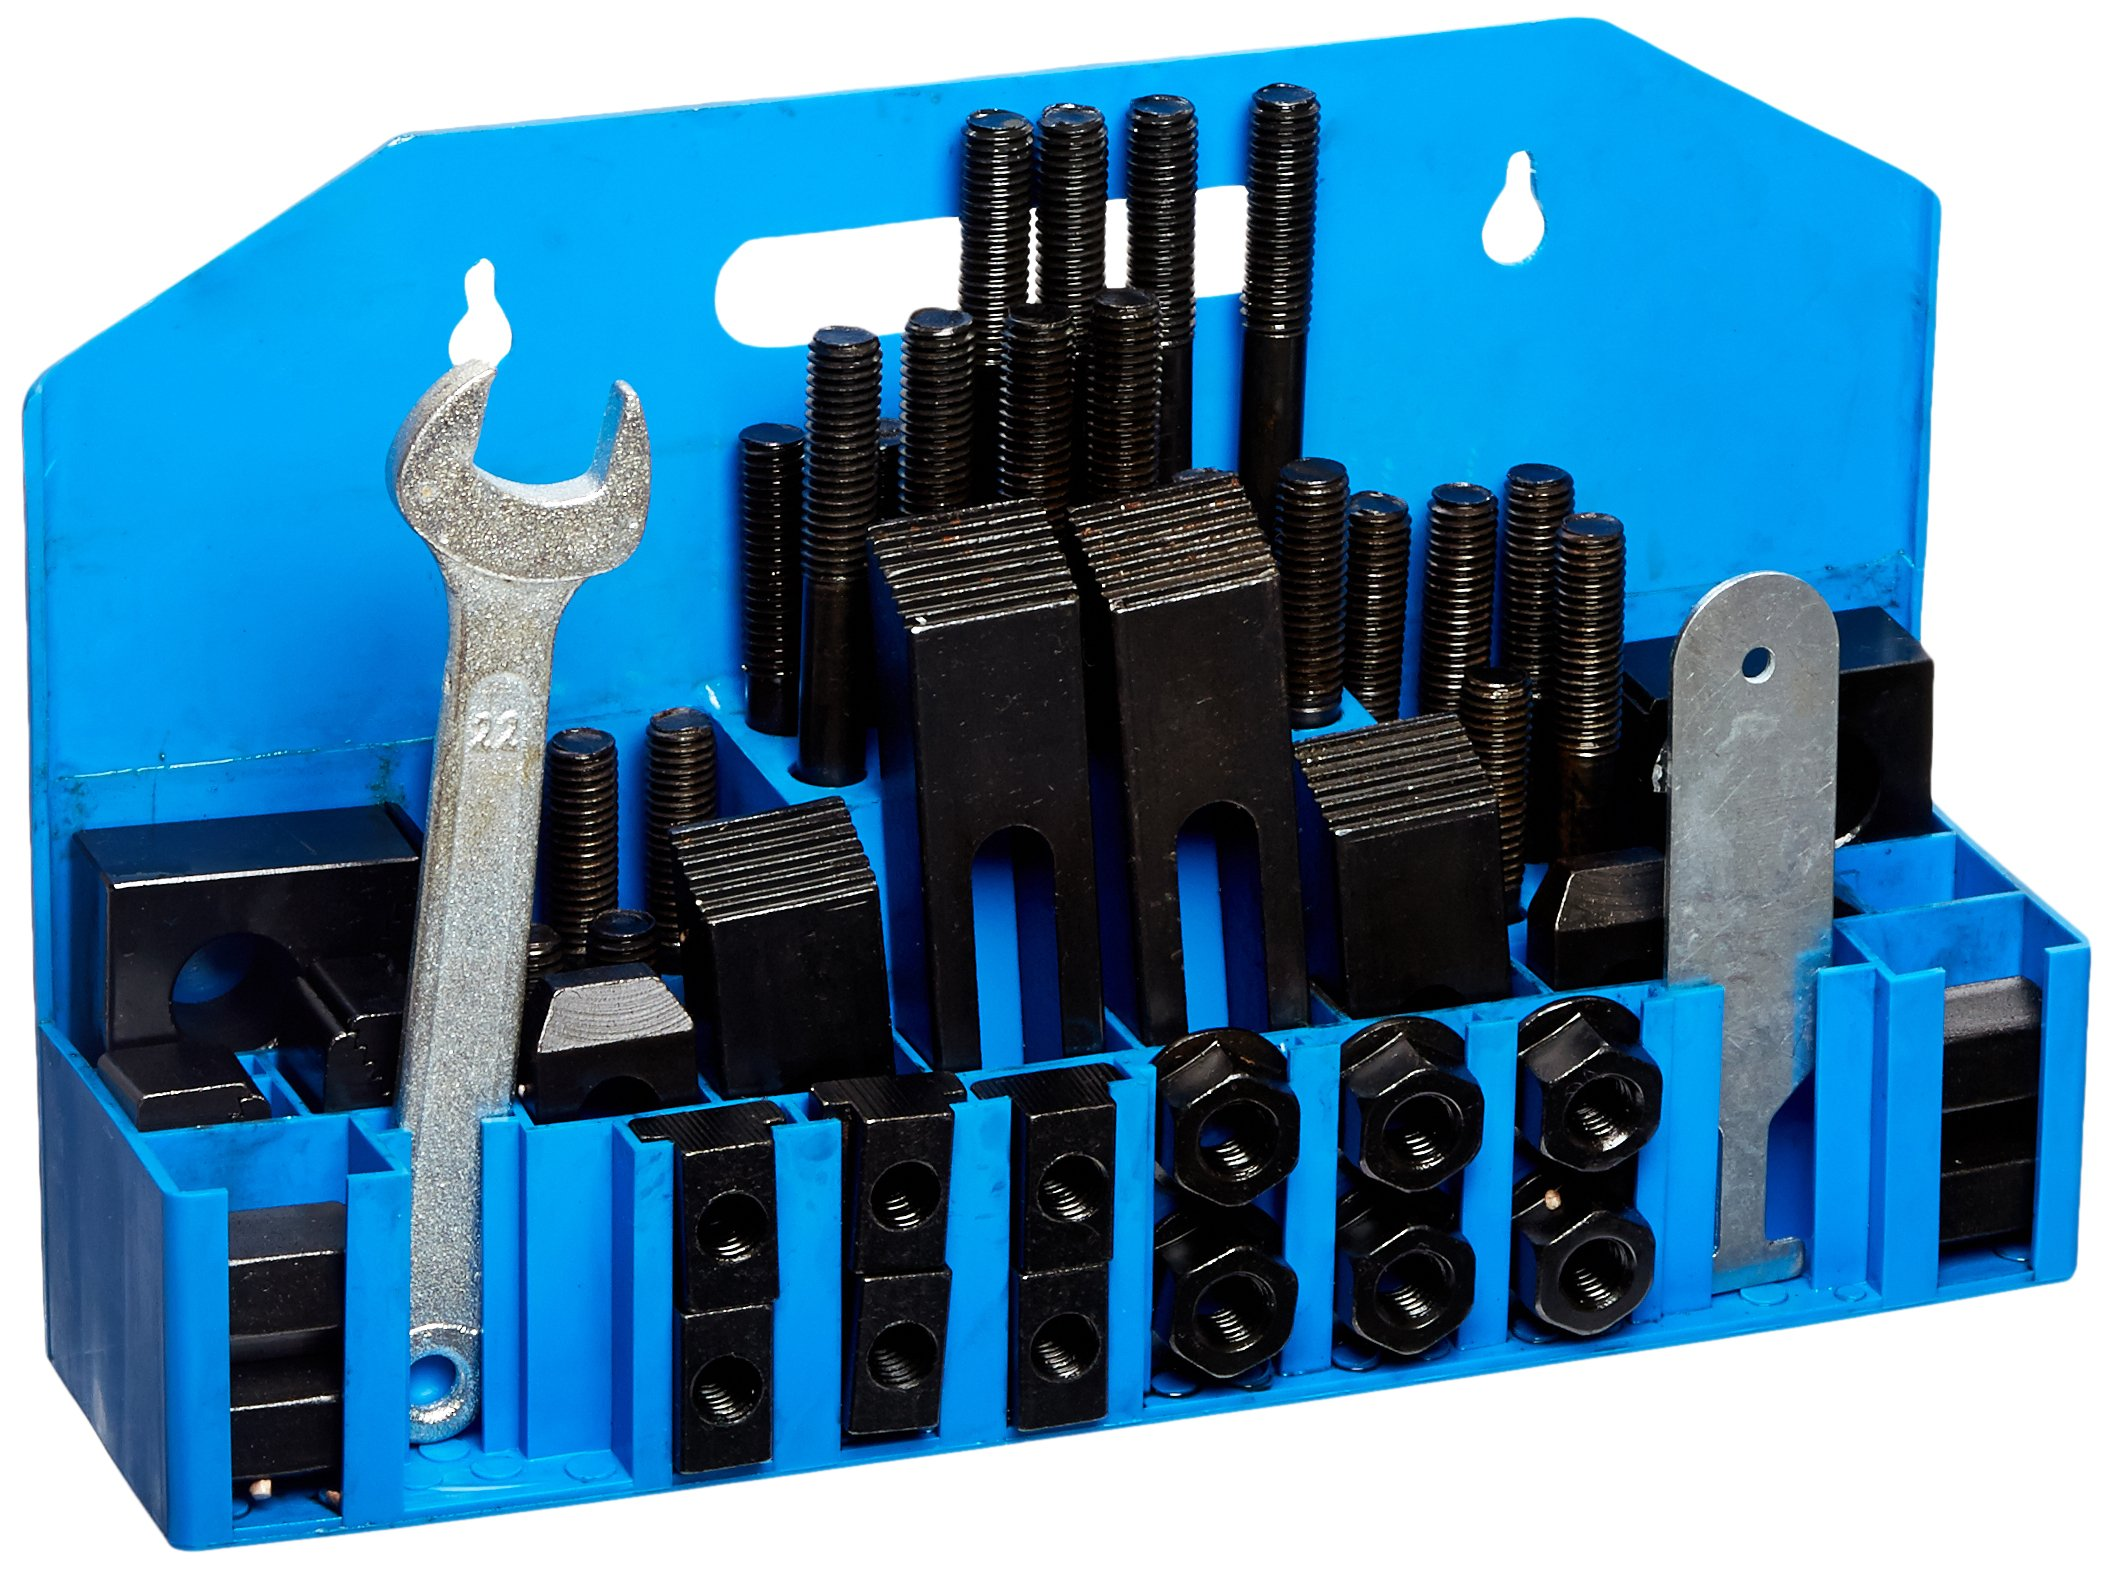 HHIP 3900-0001 58 Piece Clamping Kit (5/8 Inch T-Slot) Stud Size 1/2-13 by HHIP (Image #1)